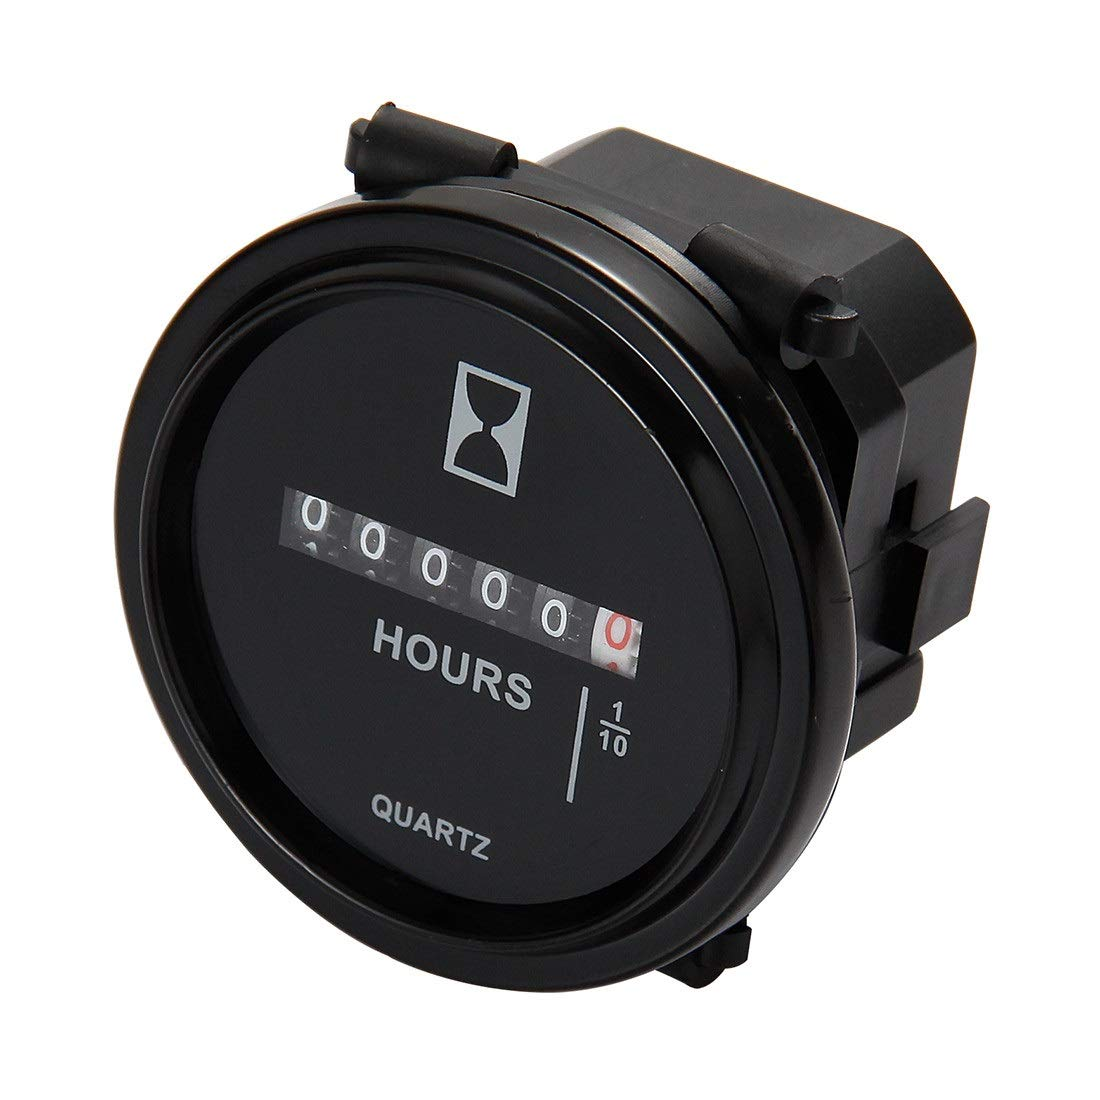 Mechanical Hour Meter Gauge - AIMILAR Professional Engine Hourmeter AC110-250V for Boat Auto ATV UTV Snowmobile Lawn Tractors Generators